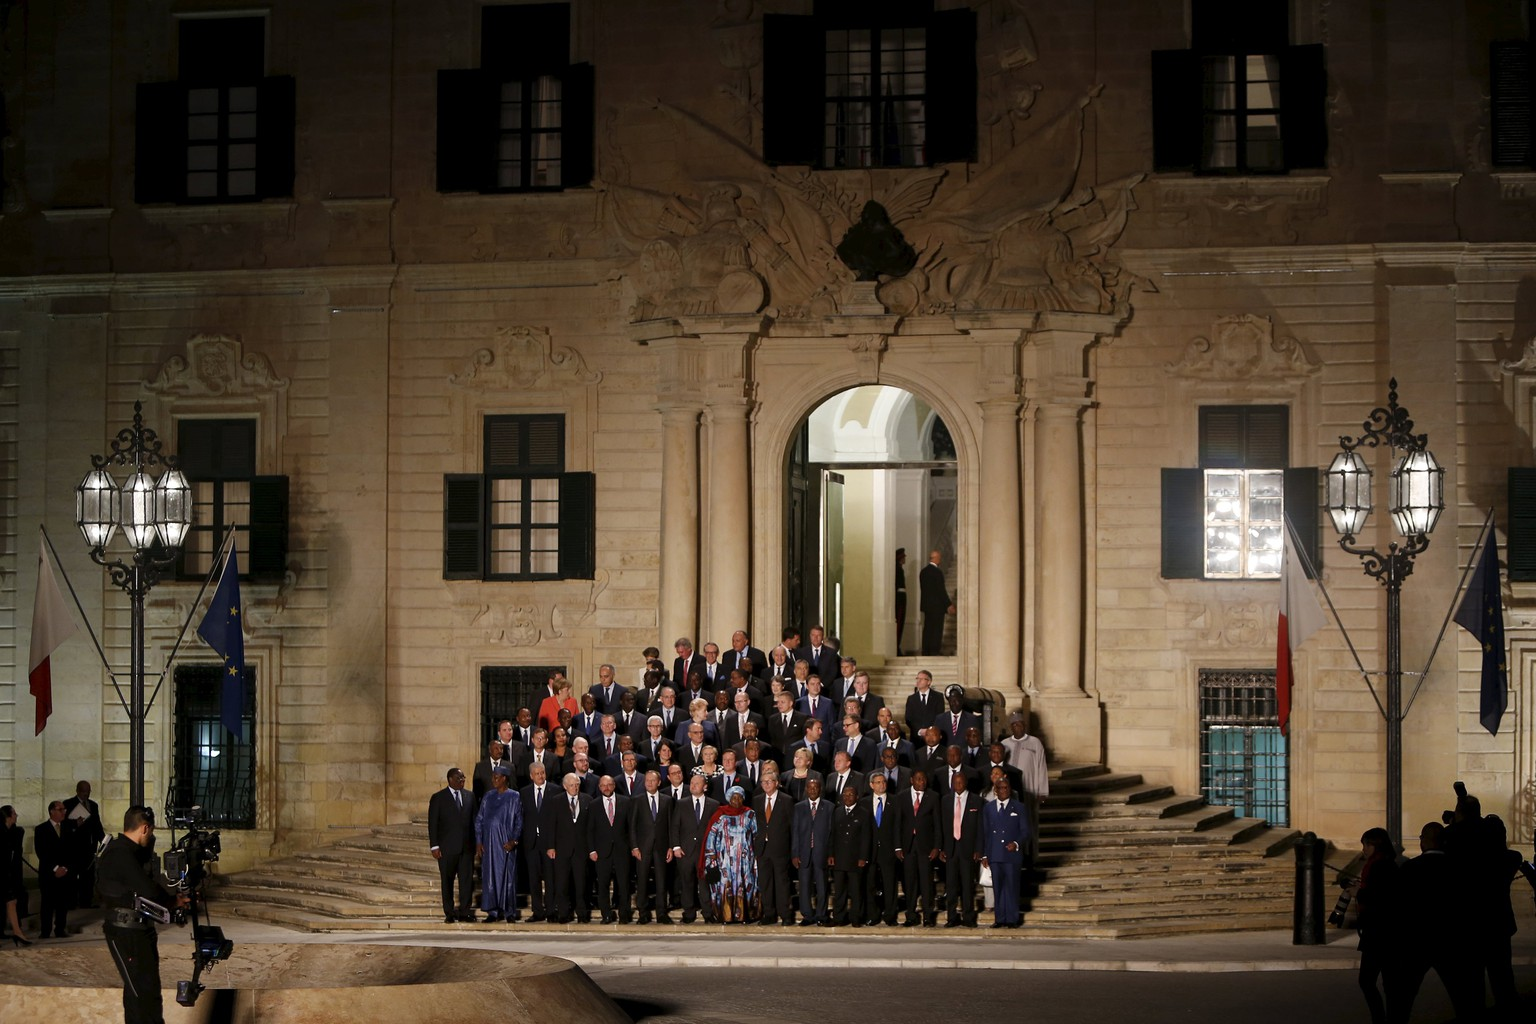 Leaders of the European Union and their African counterparts gather on the steps of the Auberge de Castille, the office of Malta's Prime Minister Joseph Muscat, for the opening ceremony of the Valletta Summit on Migration in Valletta, Malta, November 11, 2015. Leaders of the European Union met African counterparts on Malta on Wednesday, hoping pledges of cash and other aid can slow the flow of migrants crossing the Mediterranean from the world's poorest continent to wealthy Europe. REUTERS/Darrin Zammit Lupi MALTA OUT. NO COMMERCIAL OR EDITORIAL SALES IN MALTA.